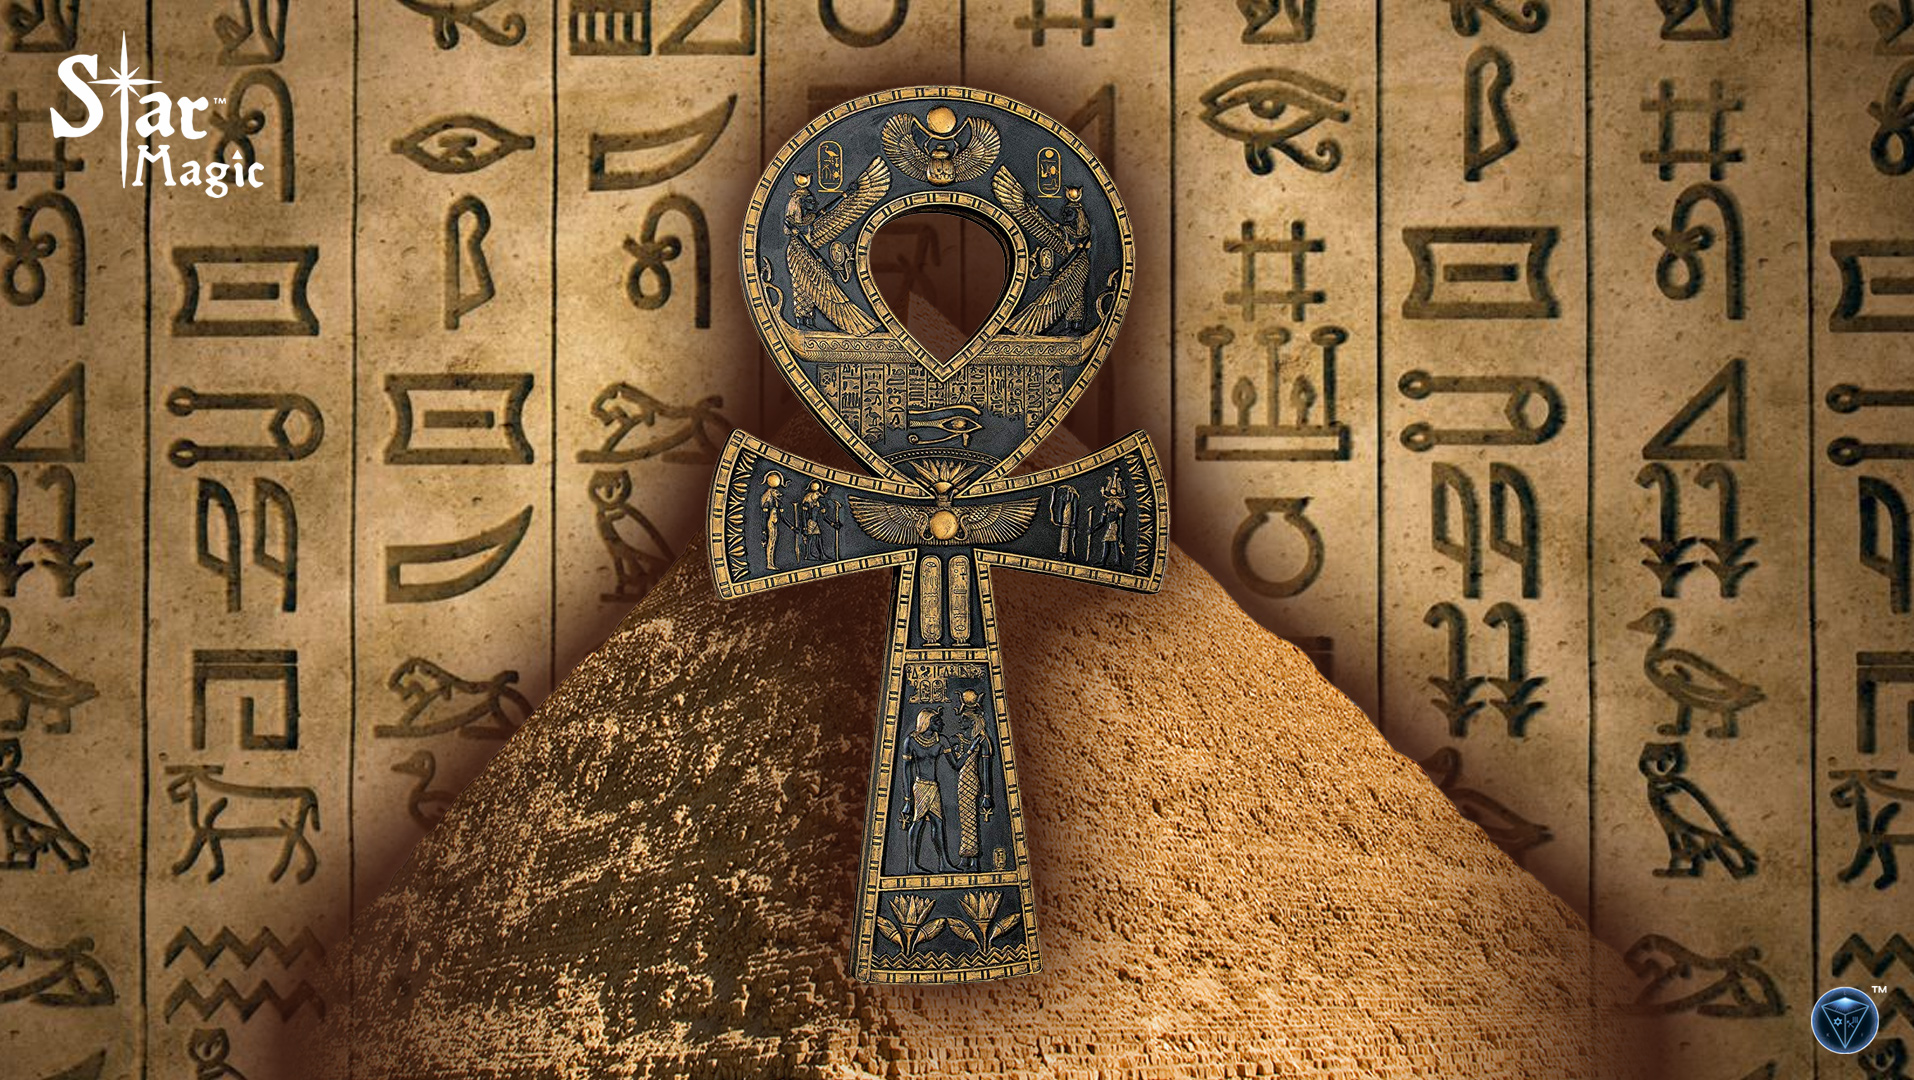 What are Egyptian Hieroglyphics?